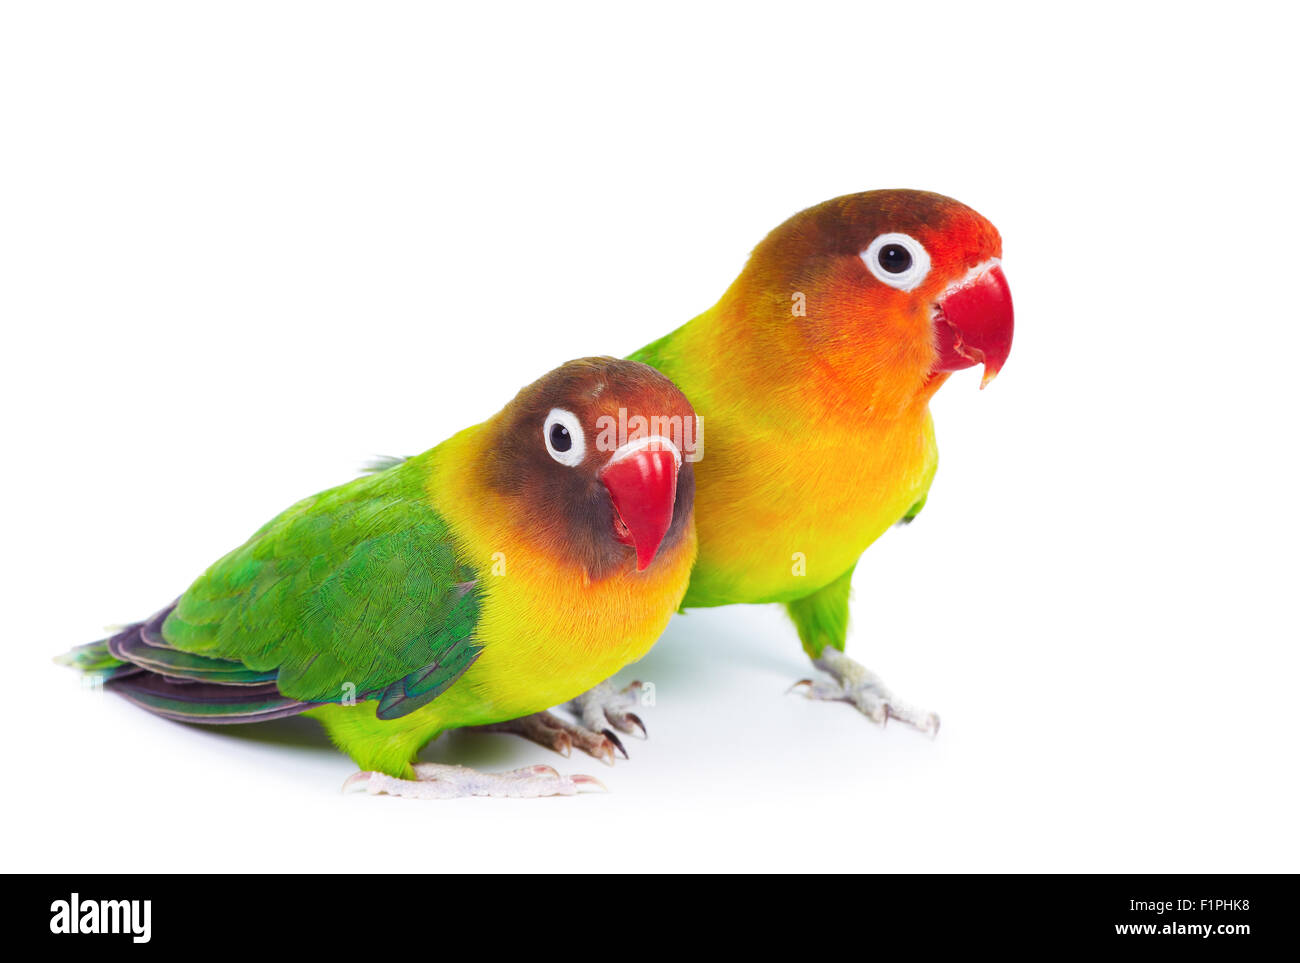 Pair of lovebirds agapornis-fischeri isolated on white - Stock Image